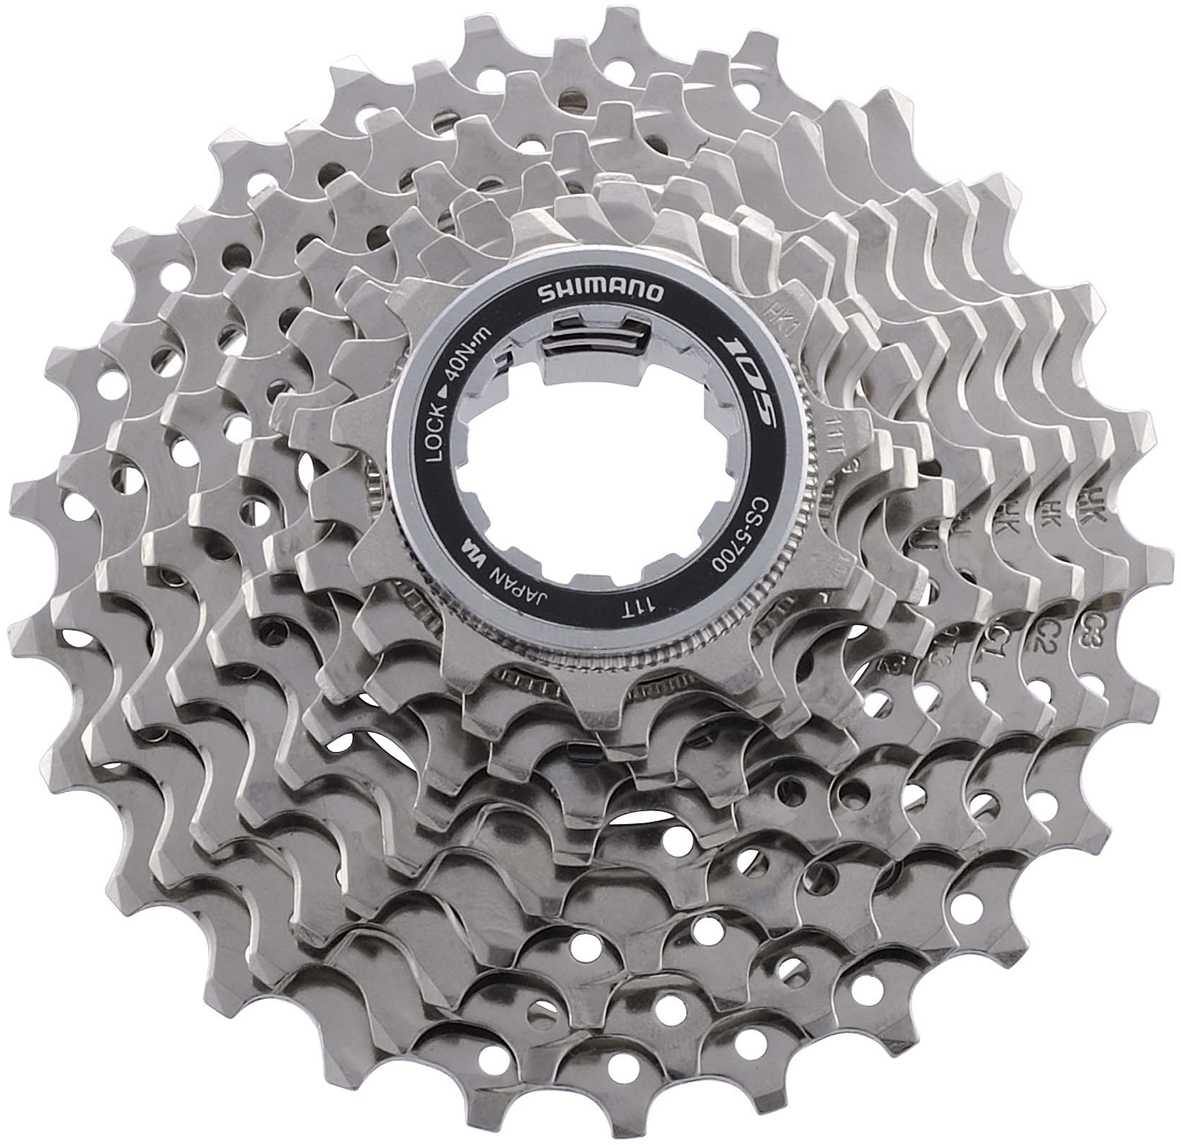 Shimano 105 5700 10 Speed 11-28 Tooth Cassette